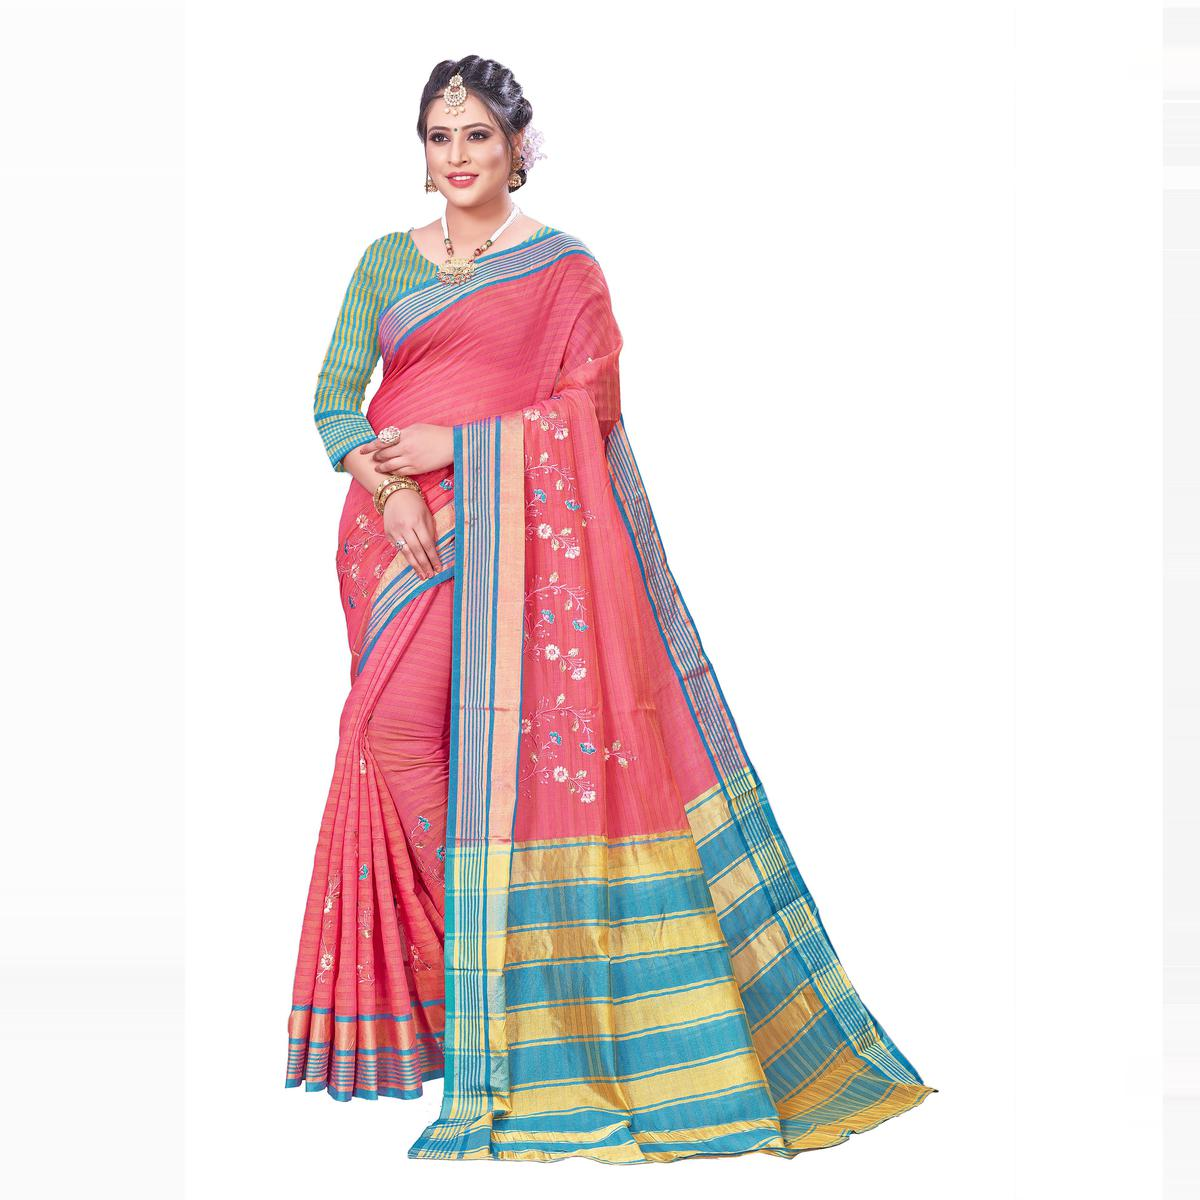 Pleasance Pink Colored Festive Wear Woven Blended Cotton Saree